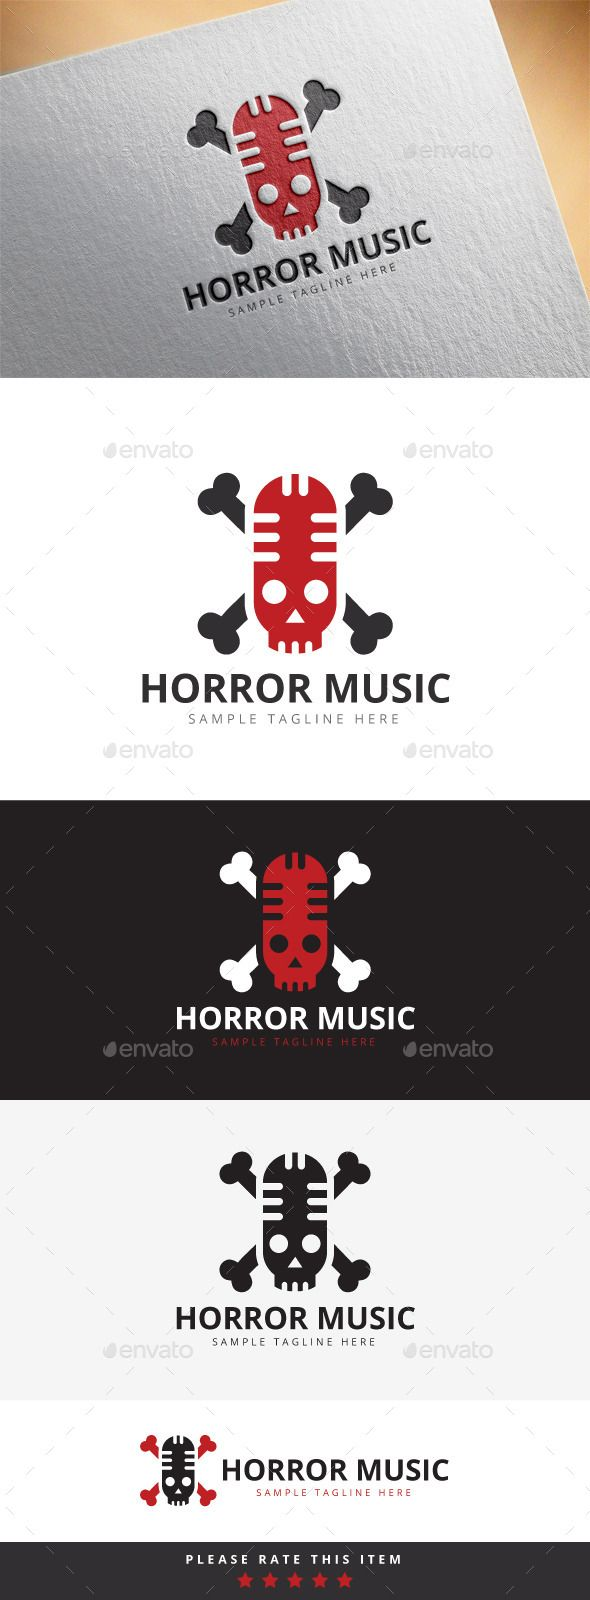 Horror Music Logo — Vector EPS #company #corporate • Available here → https://graphicriver.net/item/horror-music-logo/10192418?ref=pxcr